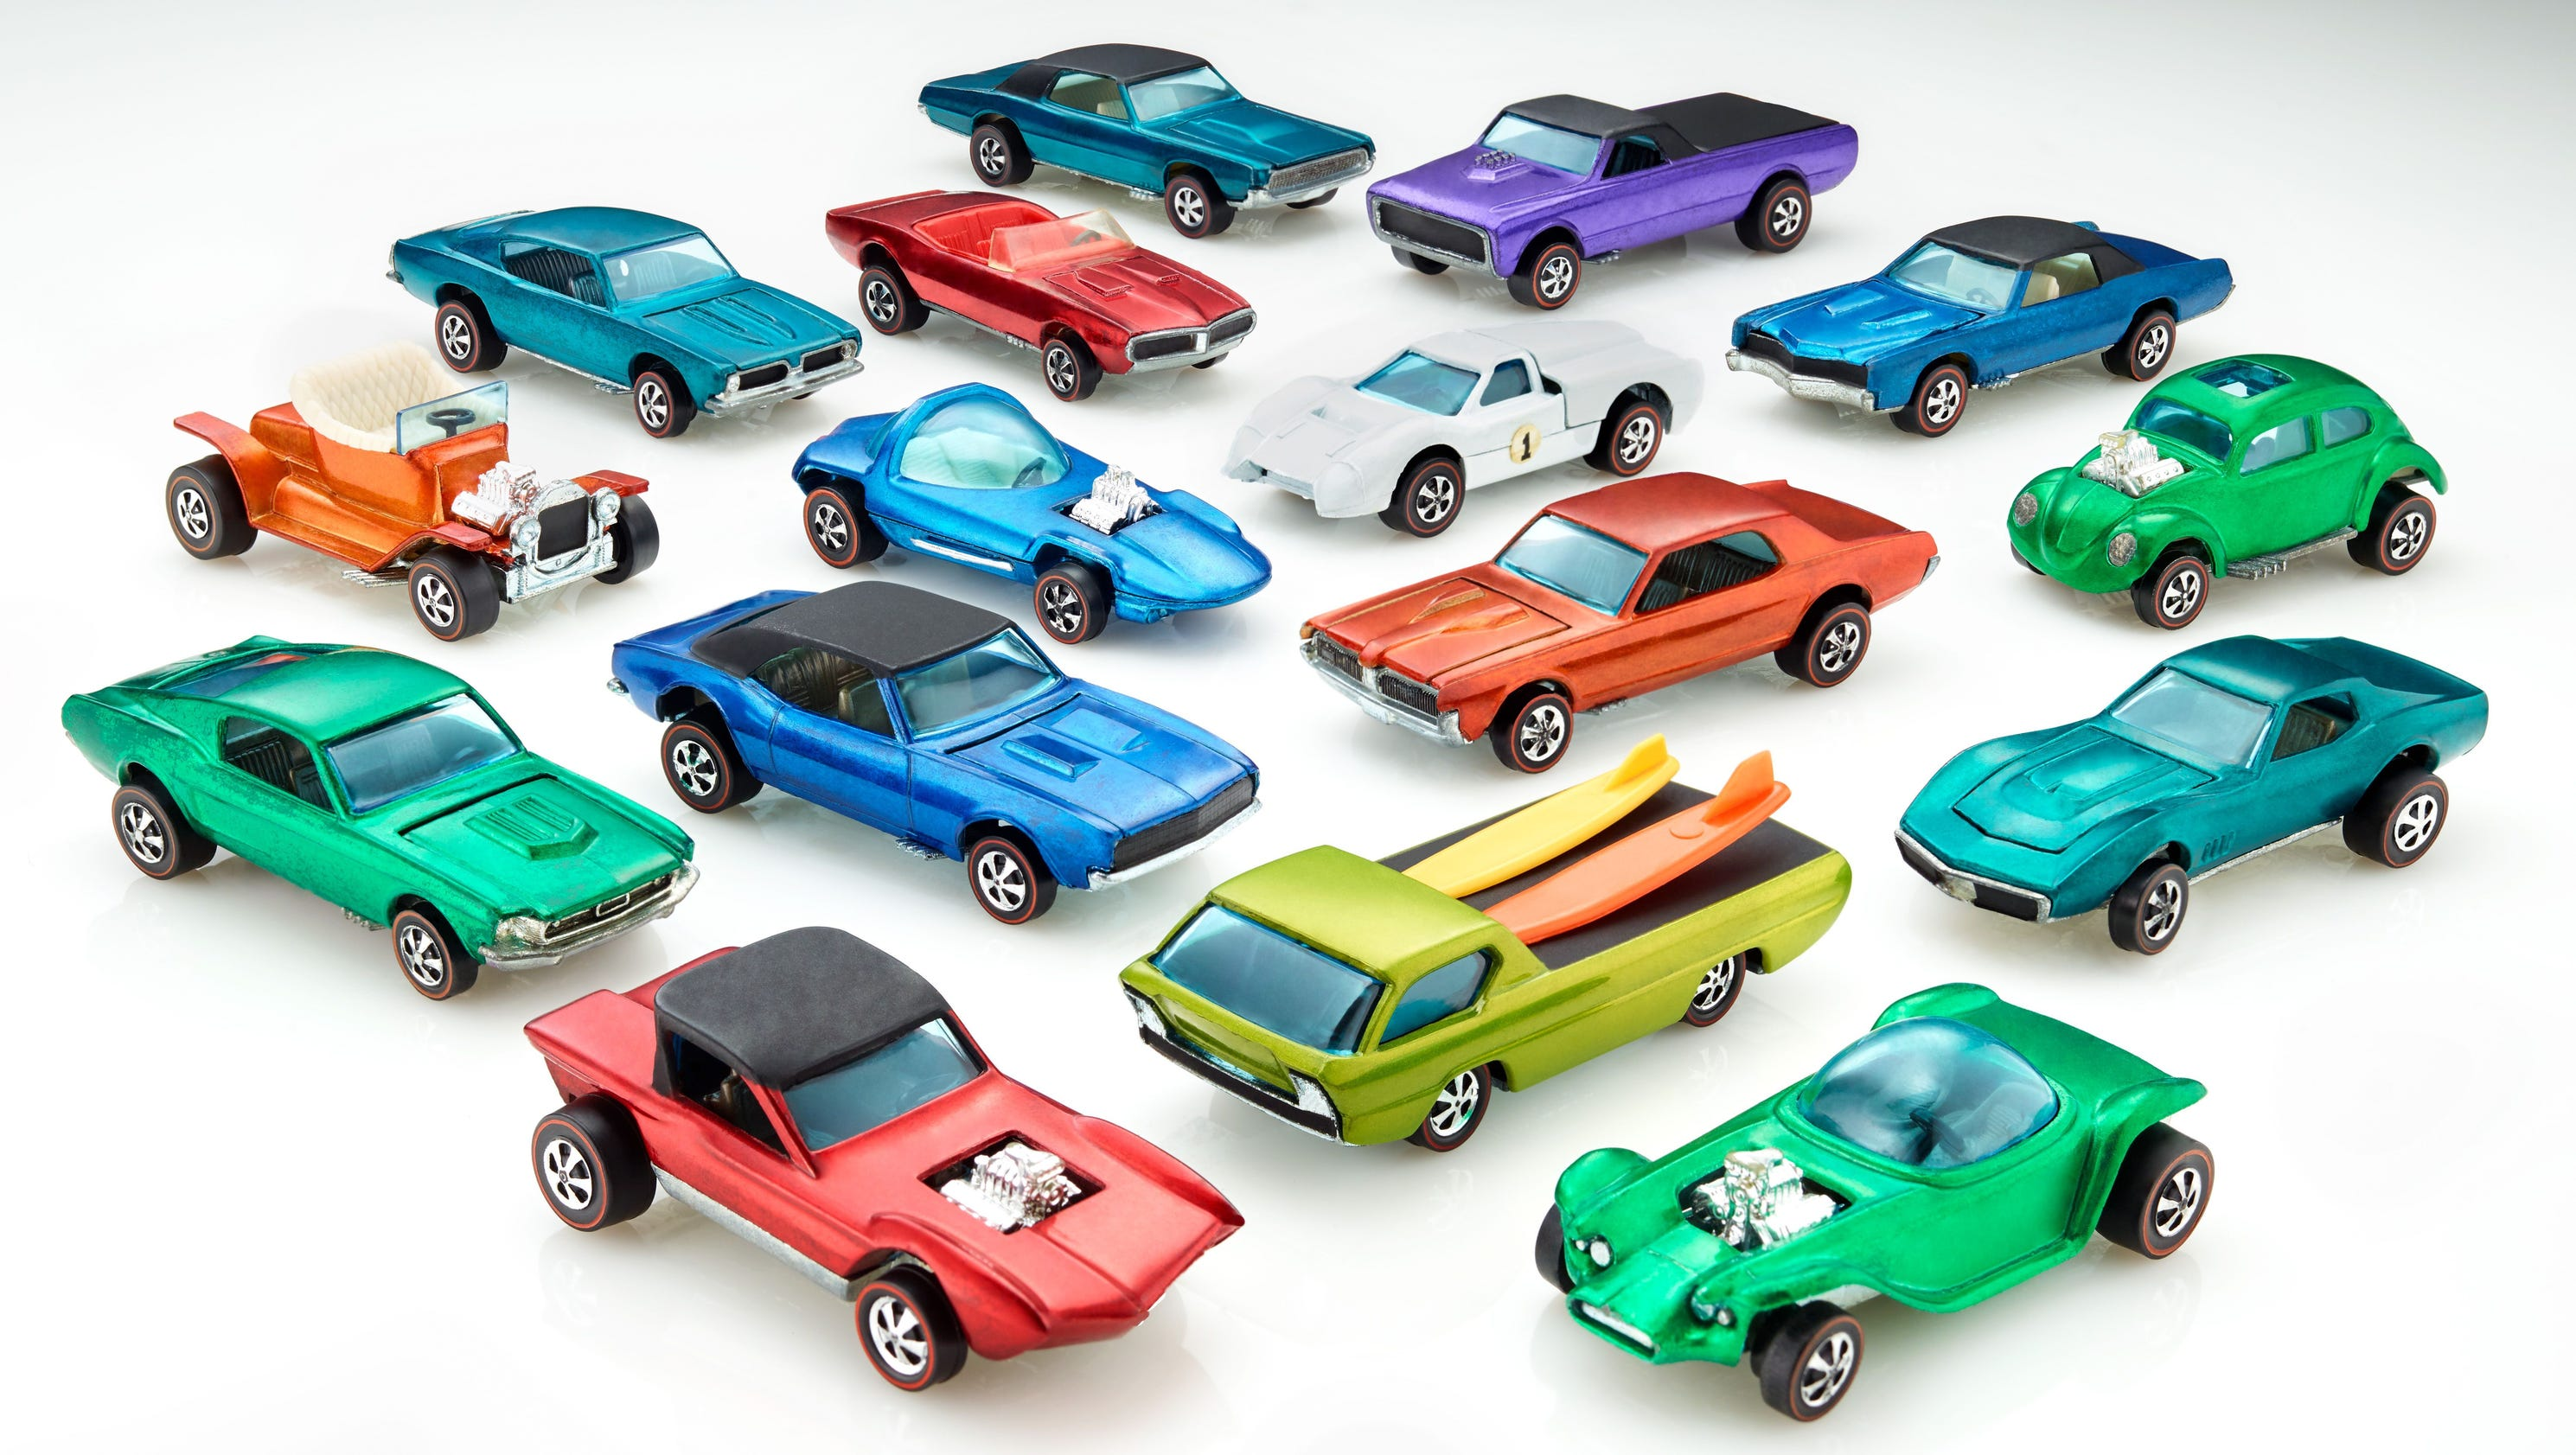 Best Hot Wheels Cars In The World